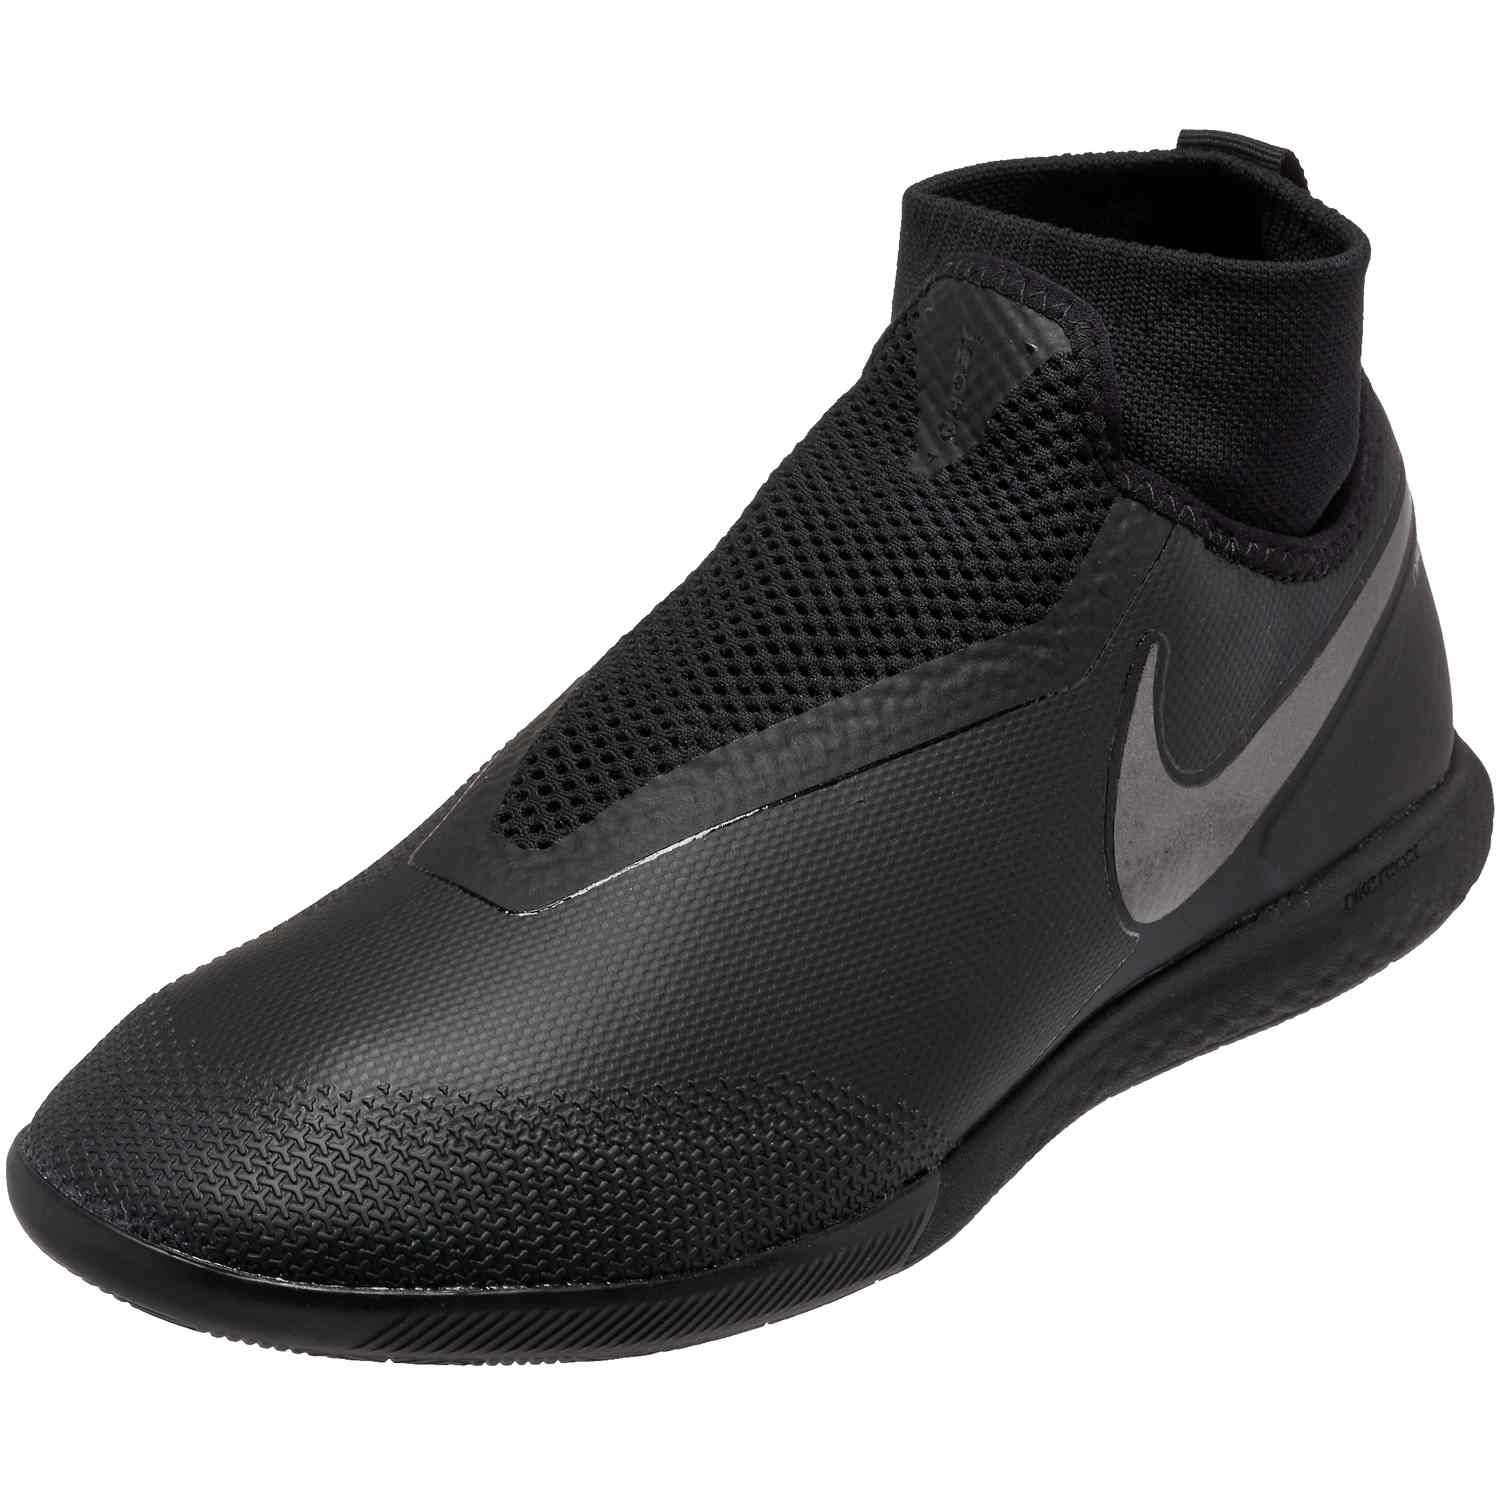 pastor Sotavento montar  Black Ops pack Nike React Phantom Pro indoor soccer shoes. Buy these shoes  from soccerpro.com now. | Chuteiras, Chuteiras nike, Tenis futsal